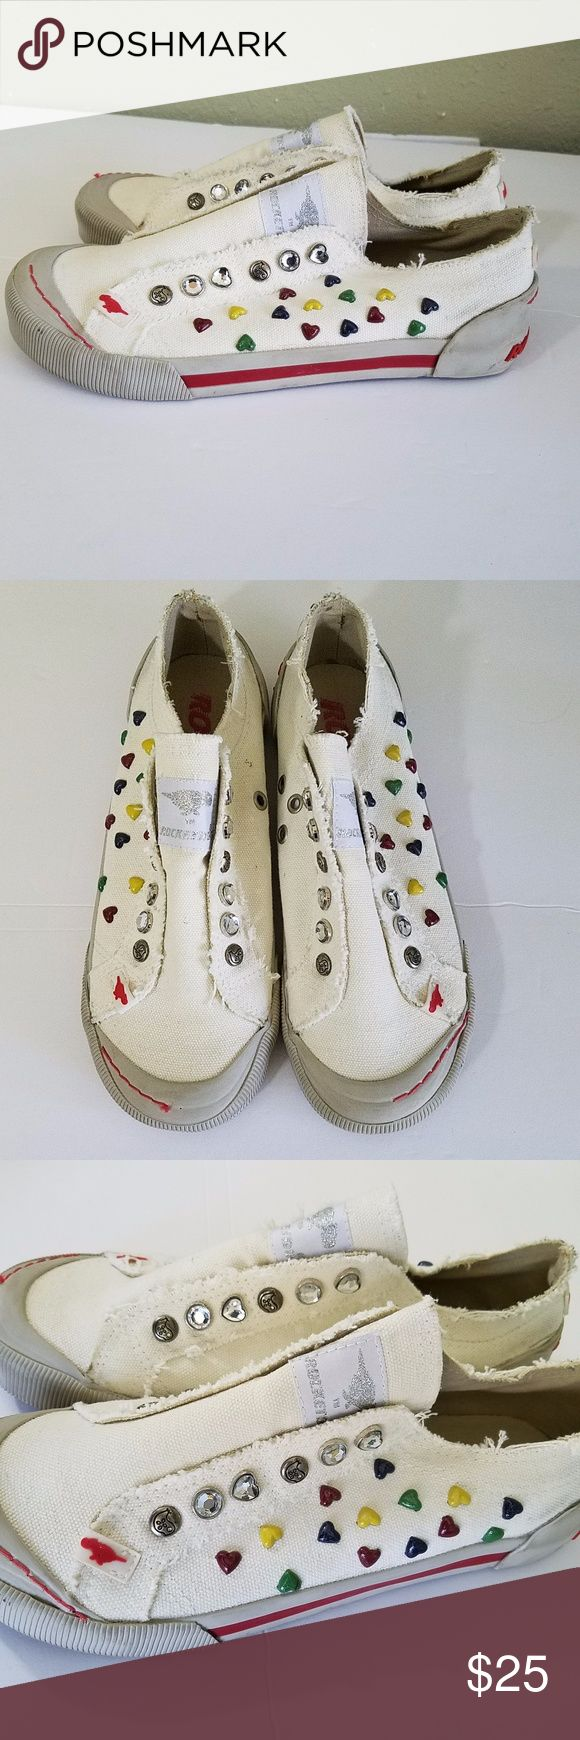 """Rocket Dog slip on tennis shoes 7 Hearts cream Rocket Dog slip on shoes.  No laces.  Frayed edges.  In good used condition.  A few minor marks.  In the eyelets it has bling buttons and the sides have heart embellishments. .  A size 7.   They measures 10"""" heel to toe on the outside bottom.  They are off white. Rocket Dog Shoes Athletic Shoes"""